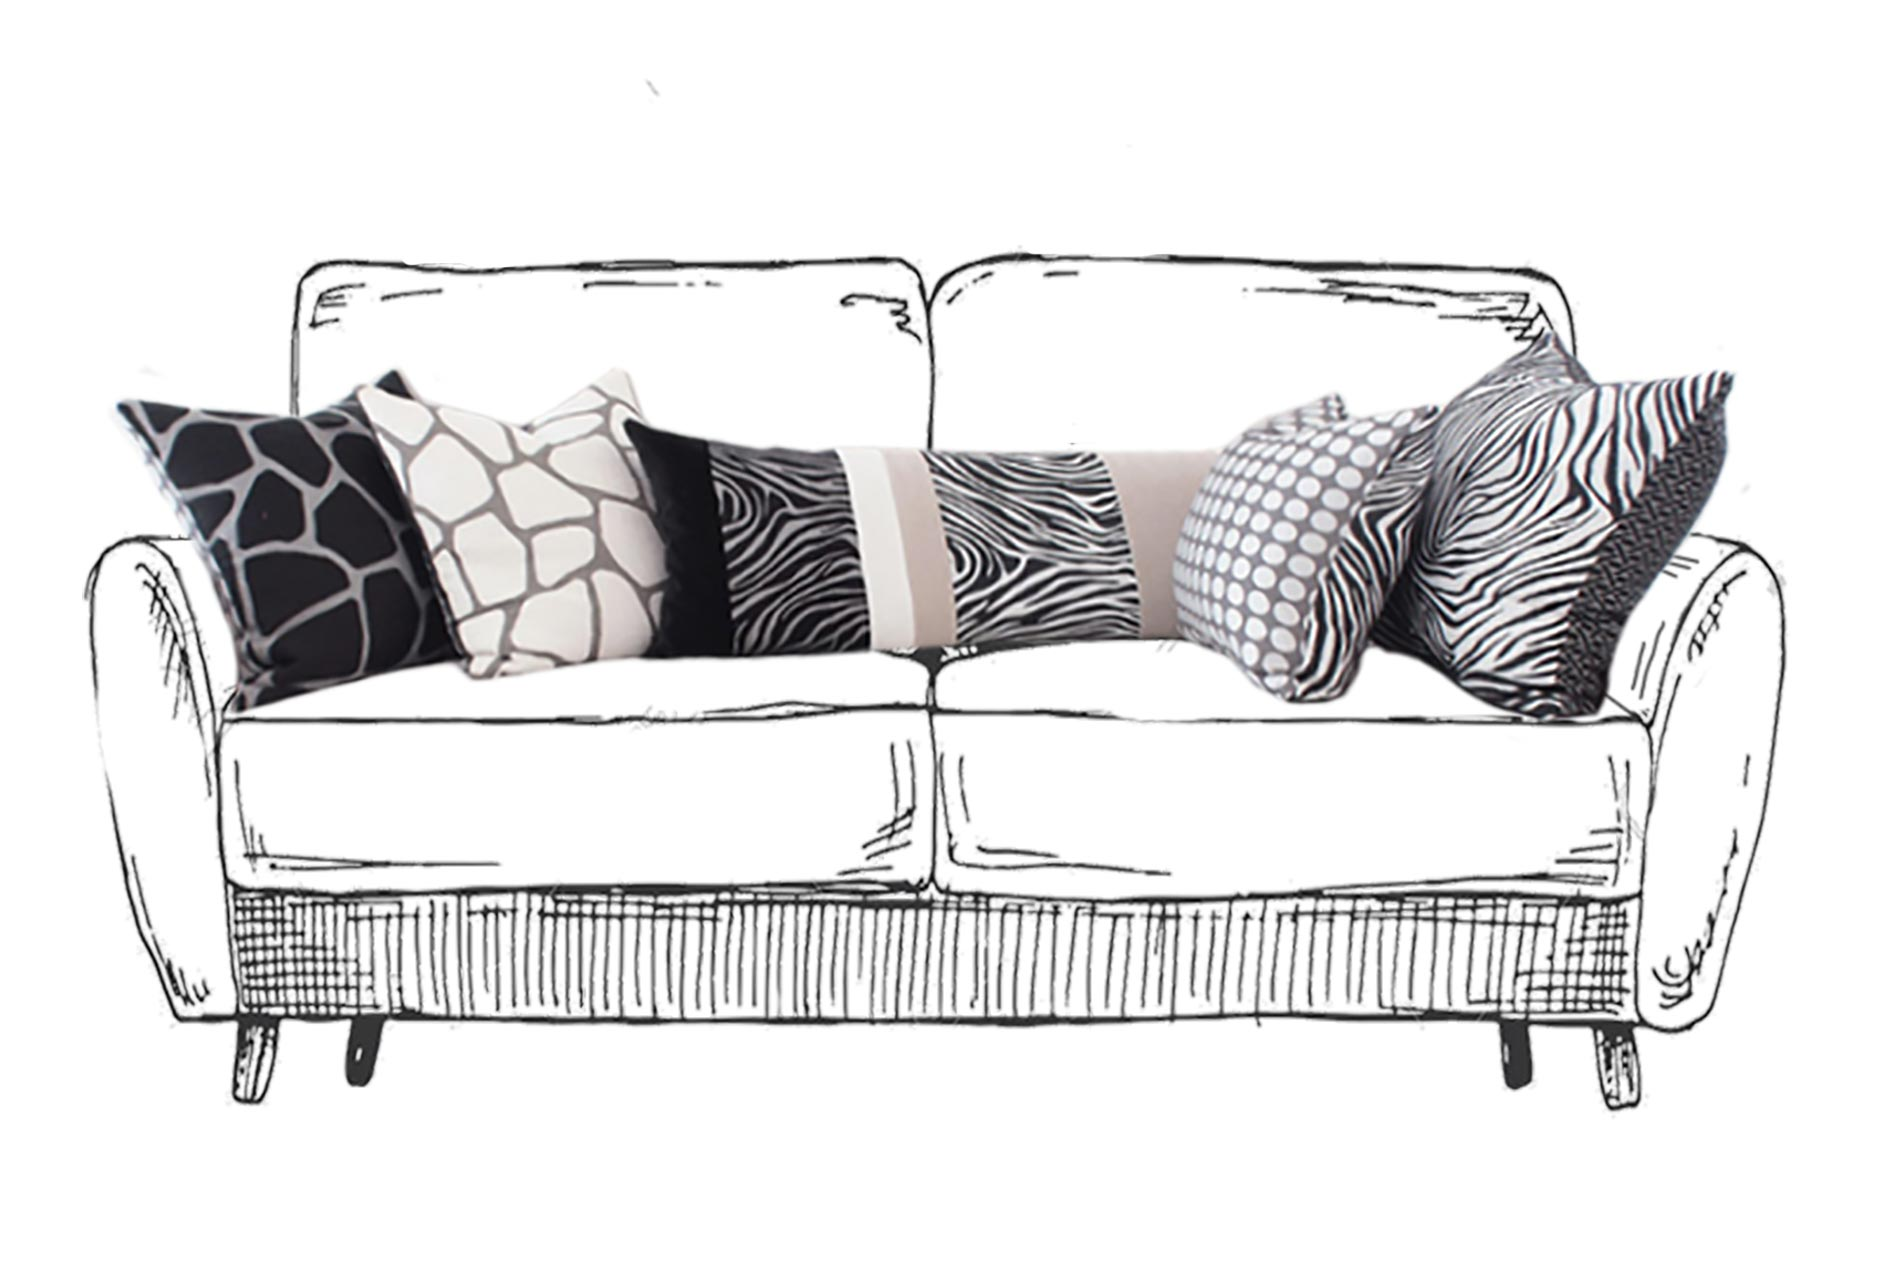 cushions how to set them on the sofa